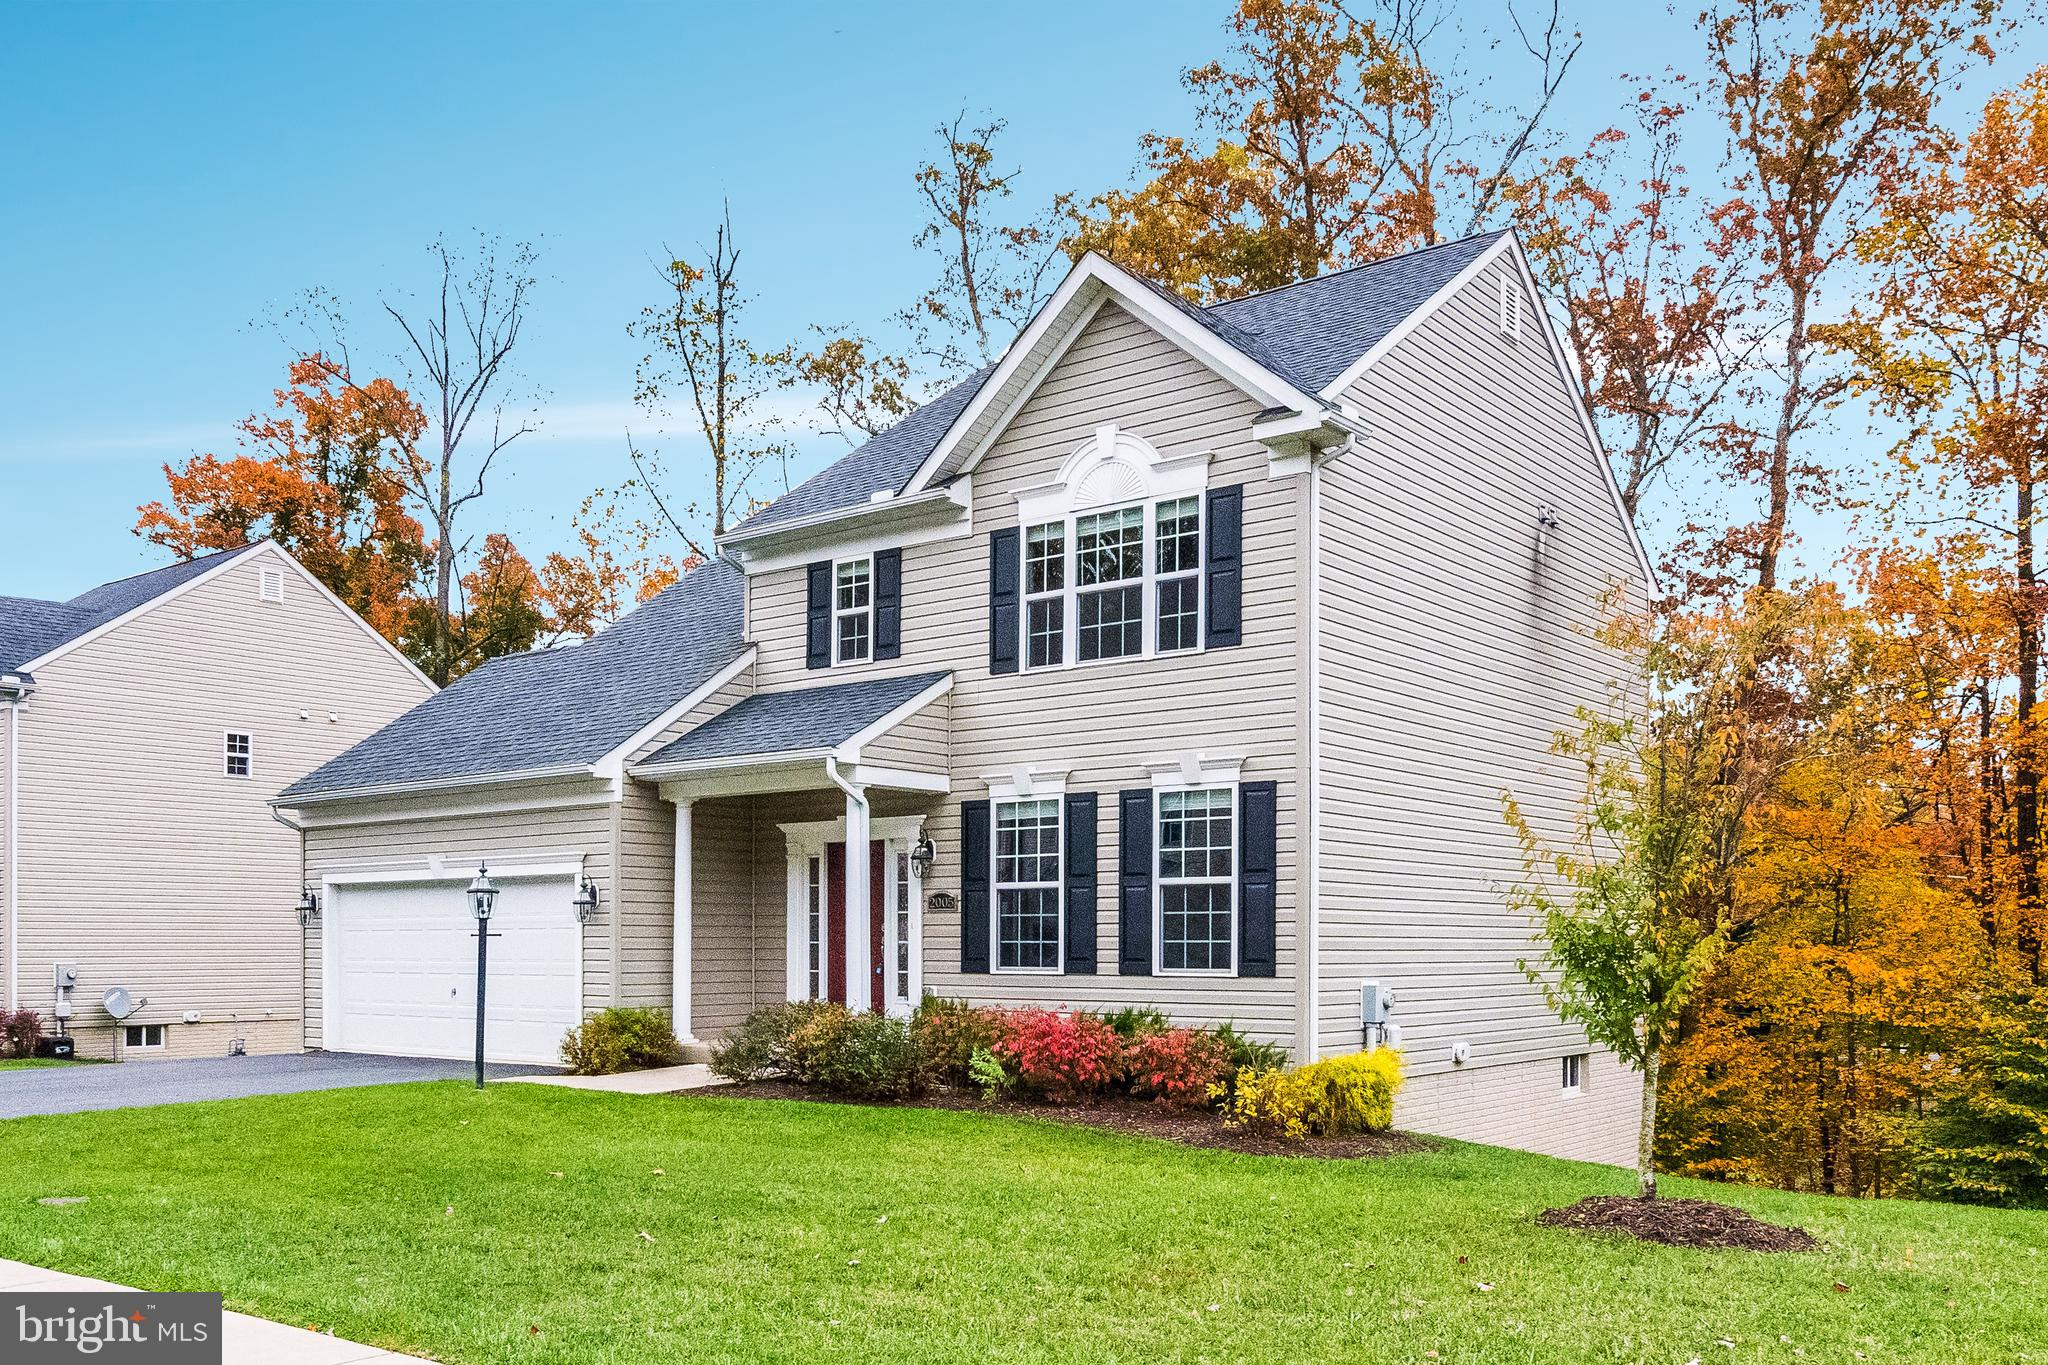 2005 CASSIDY COURT, POINT OF ROCKS, MD 21777